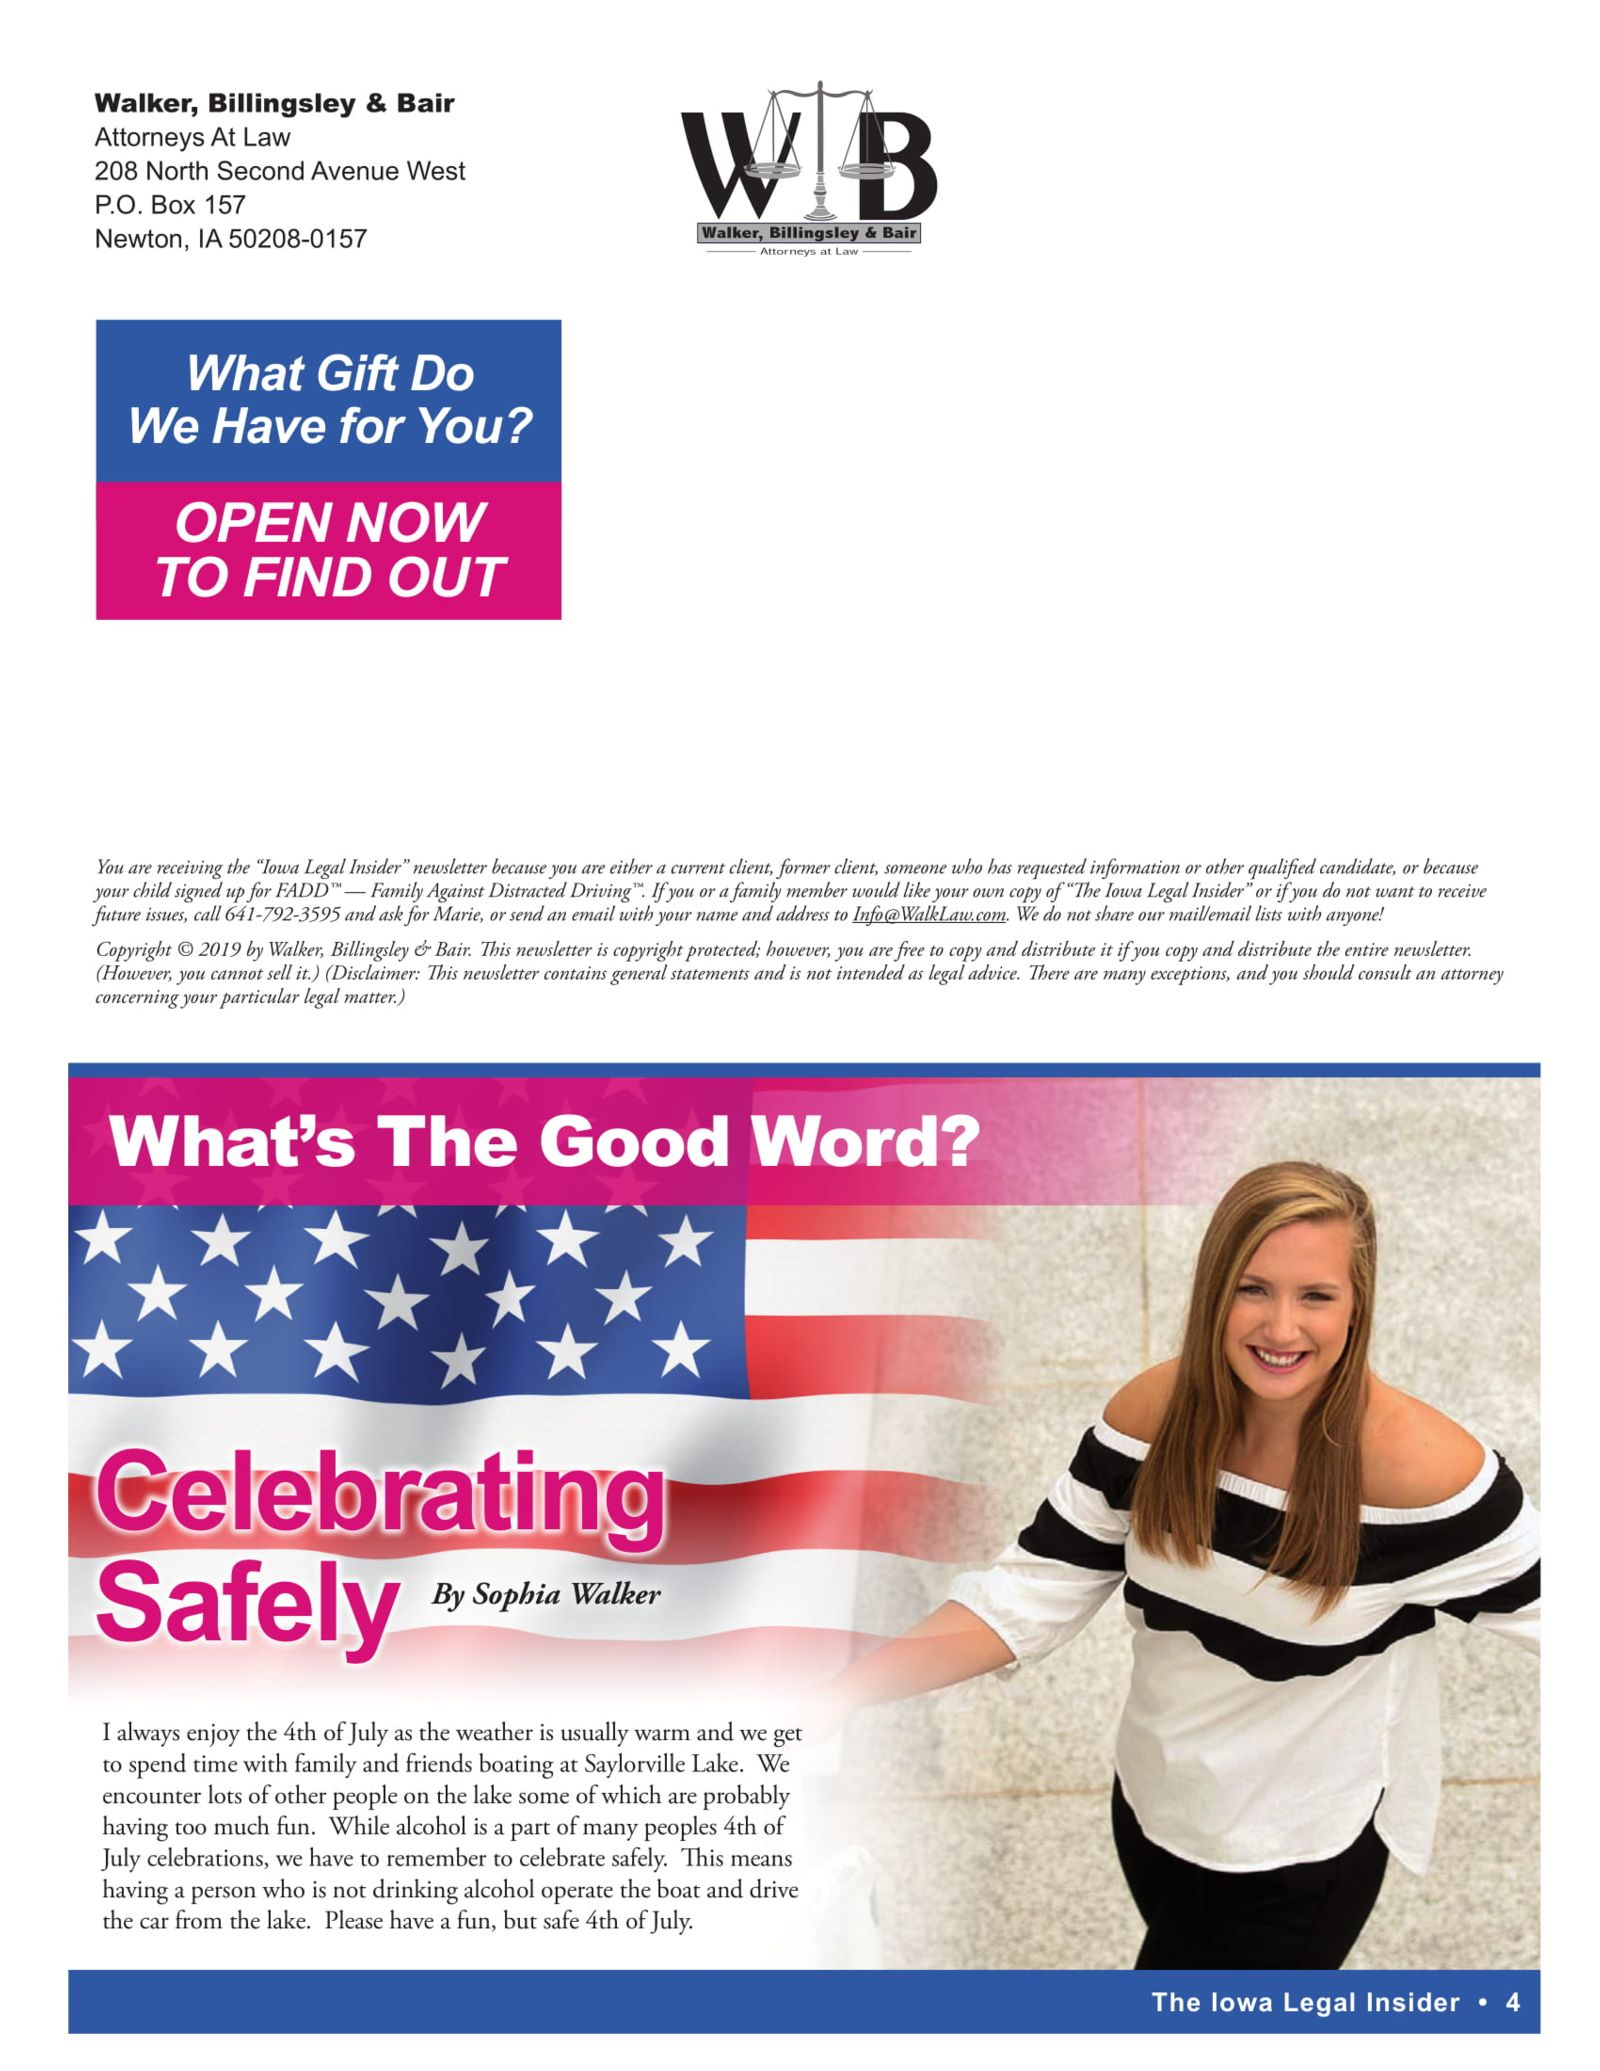 celebrating safety on july 4th